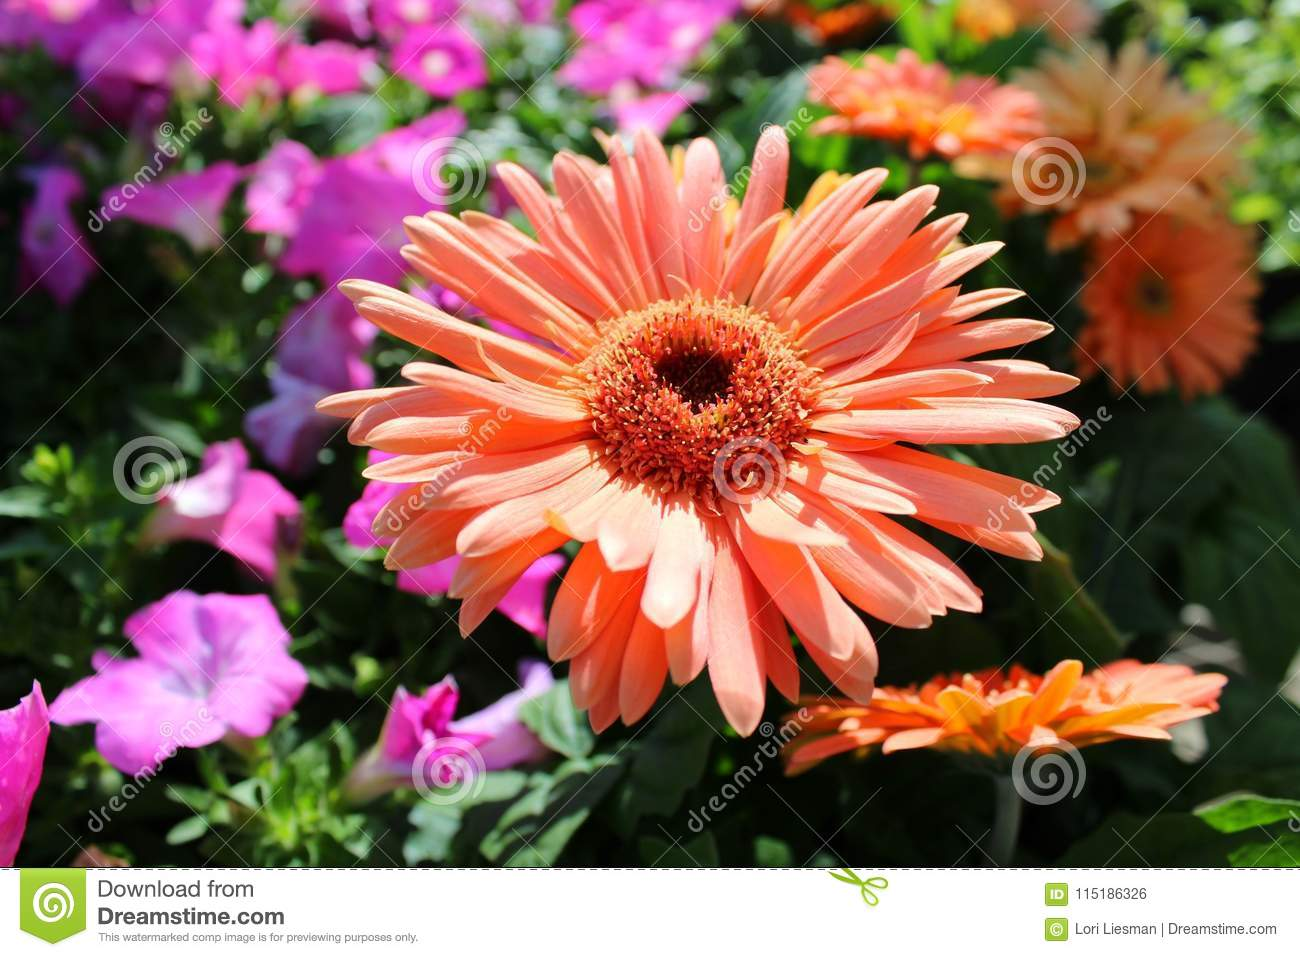 A Large Peach Colored Flower That Resembles A Daisy Stock Photo